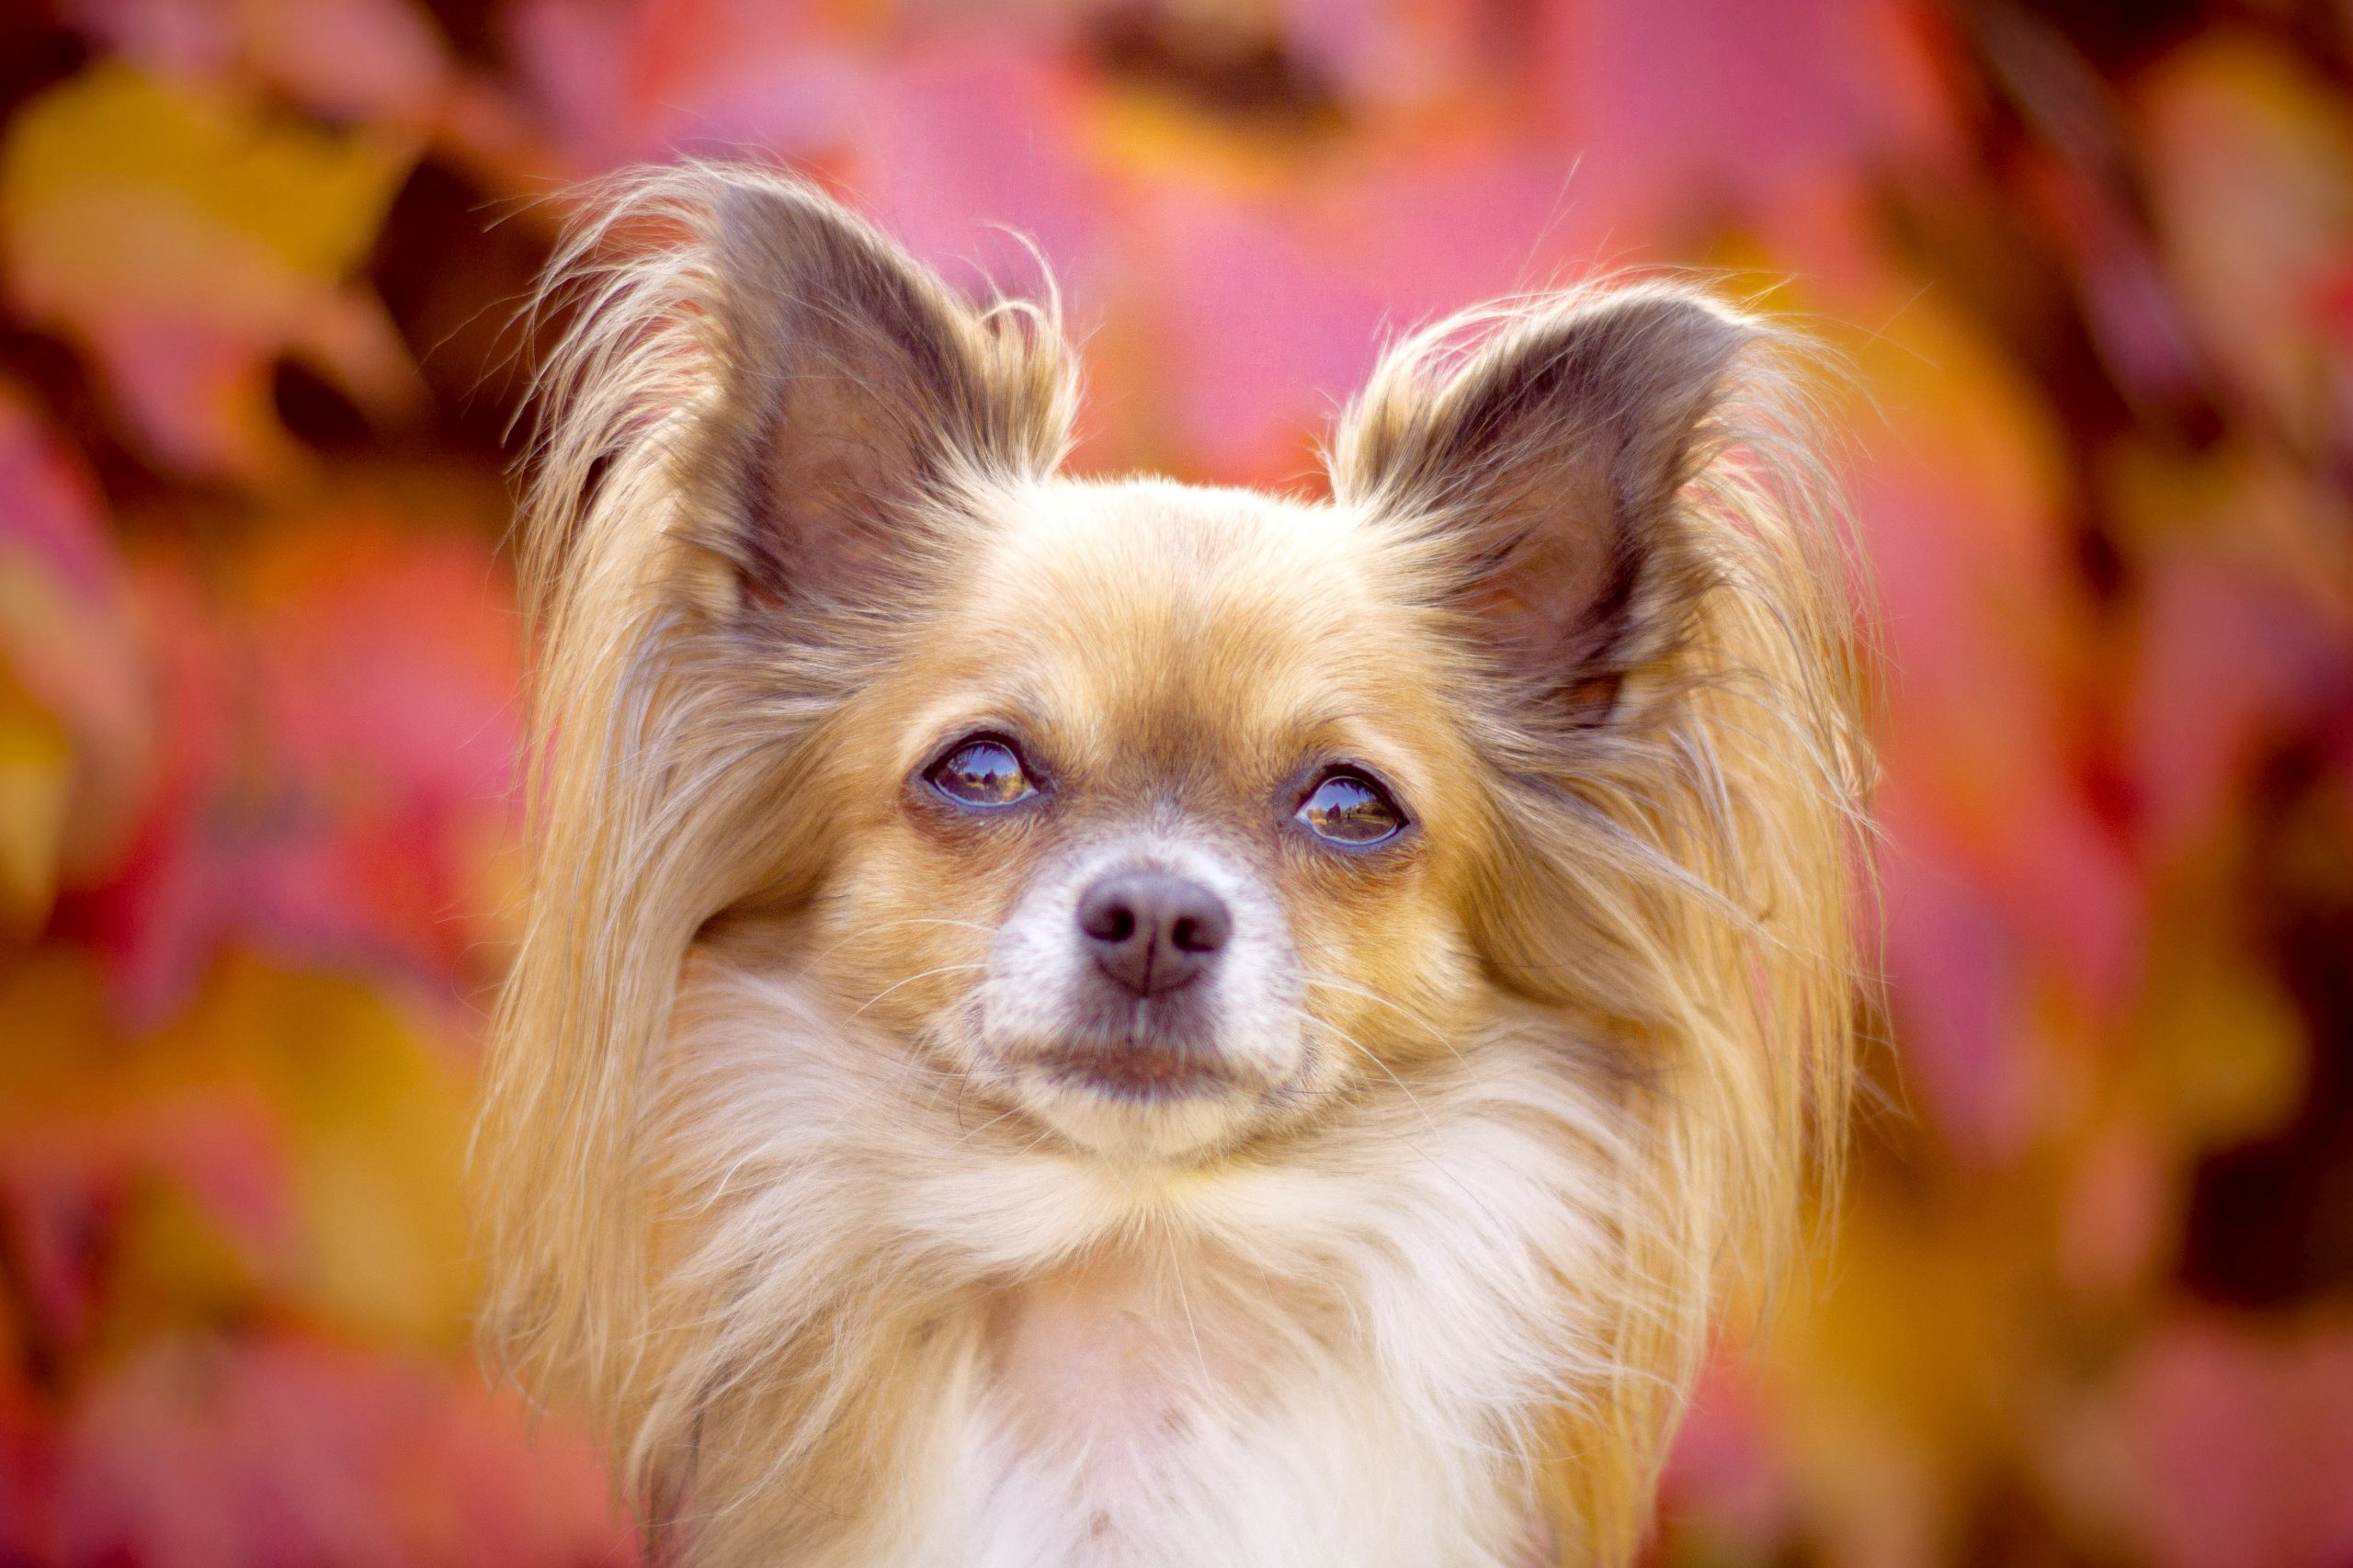 Papillon dog, easiest small dogs to housebreak, photo by Anna Dudkova.